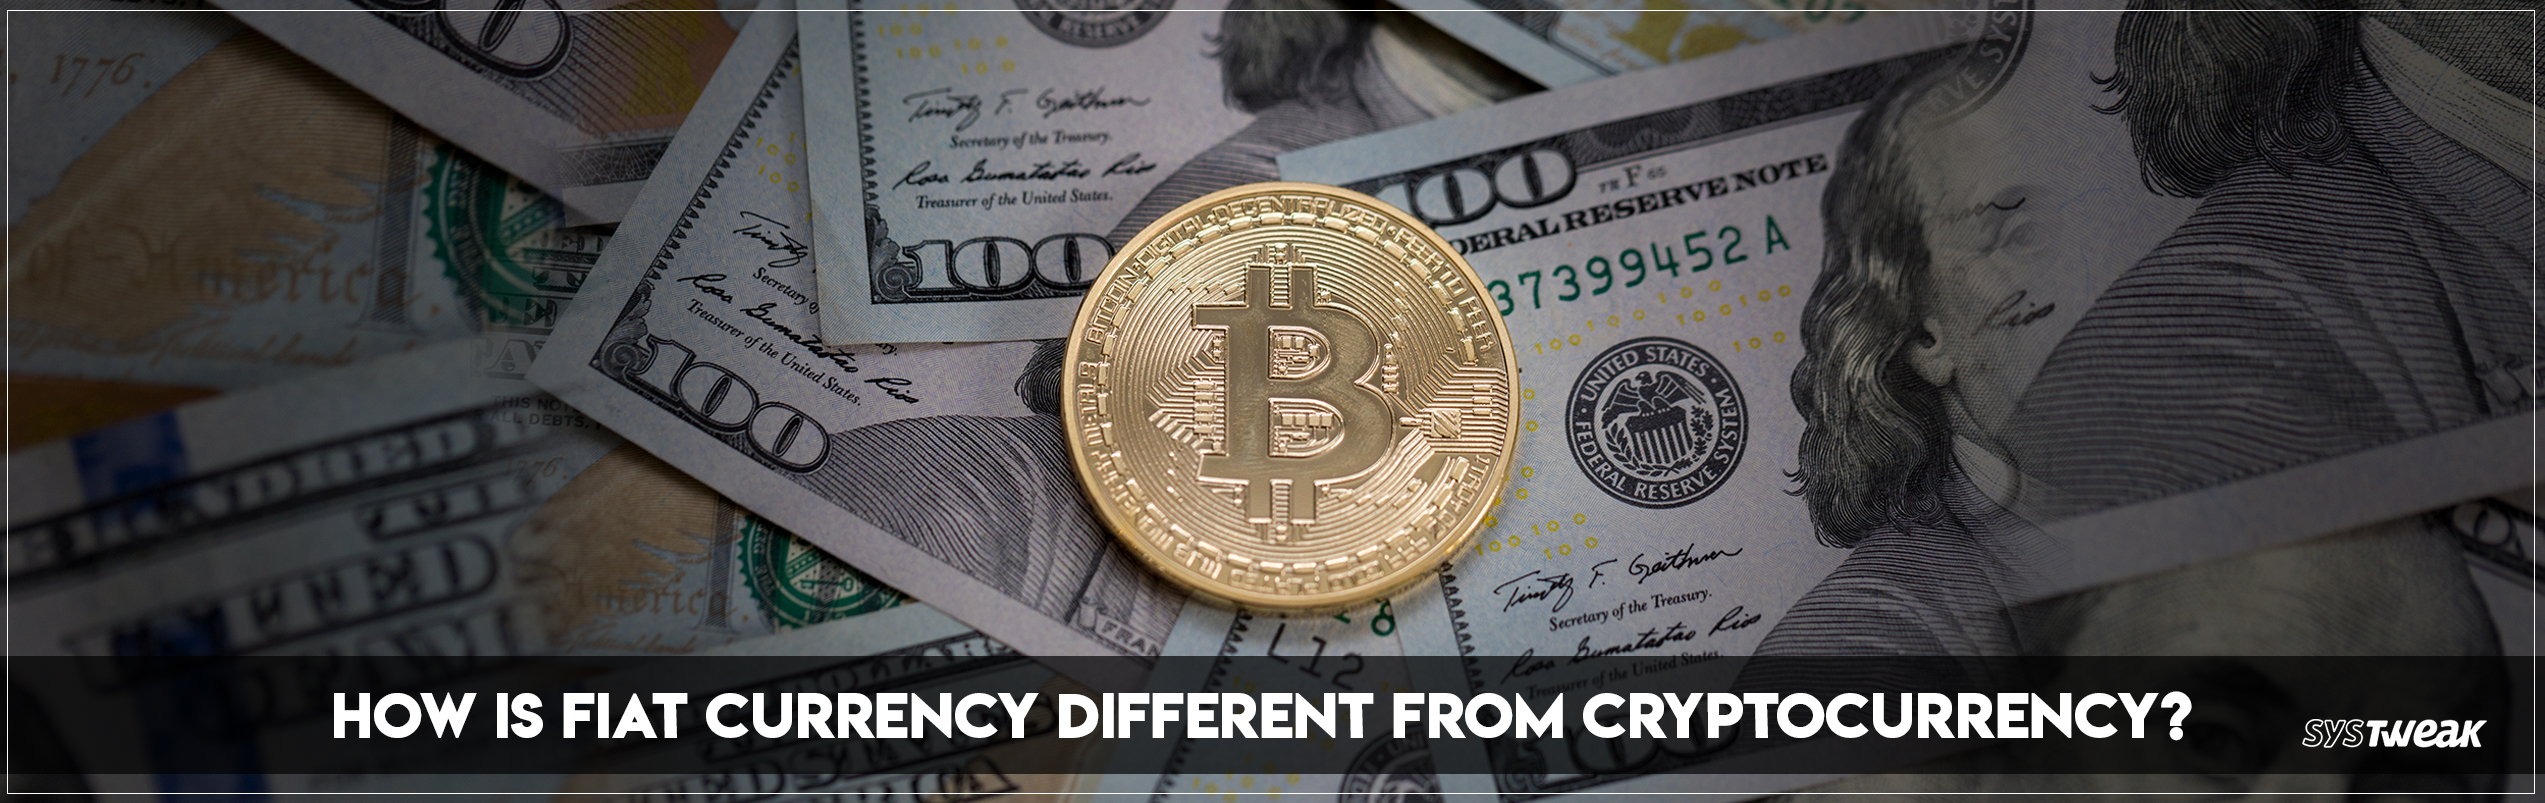 Difference Between Fiat Currency and Cryptocurrency